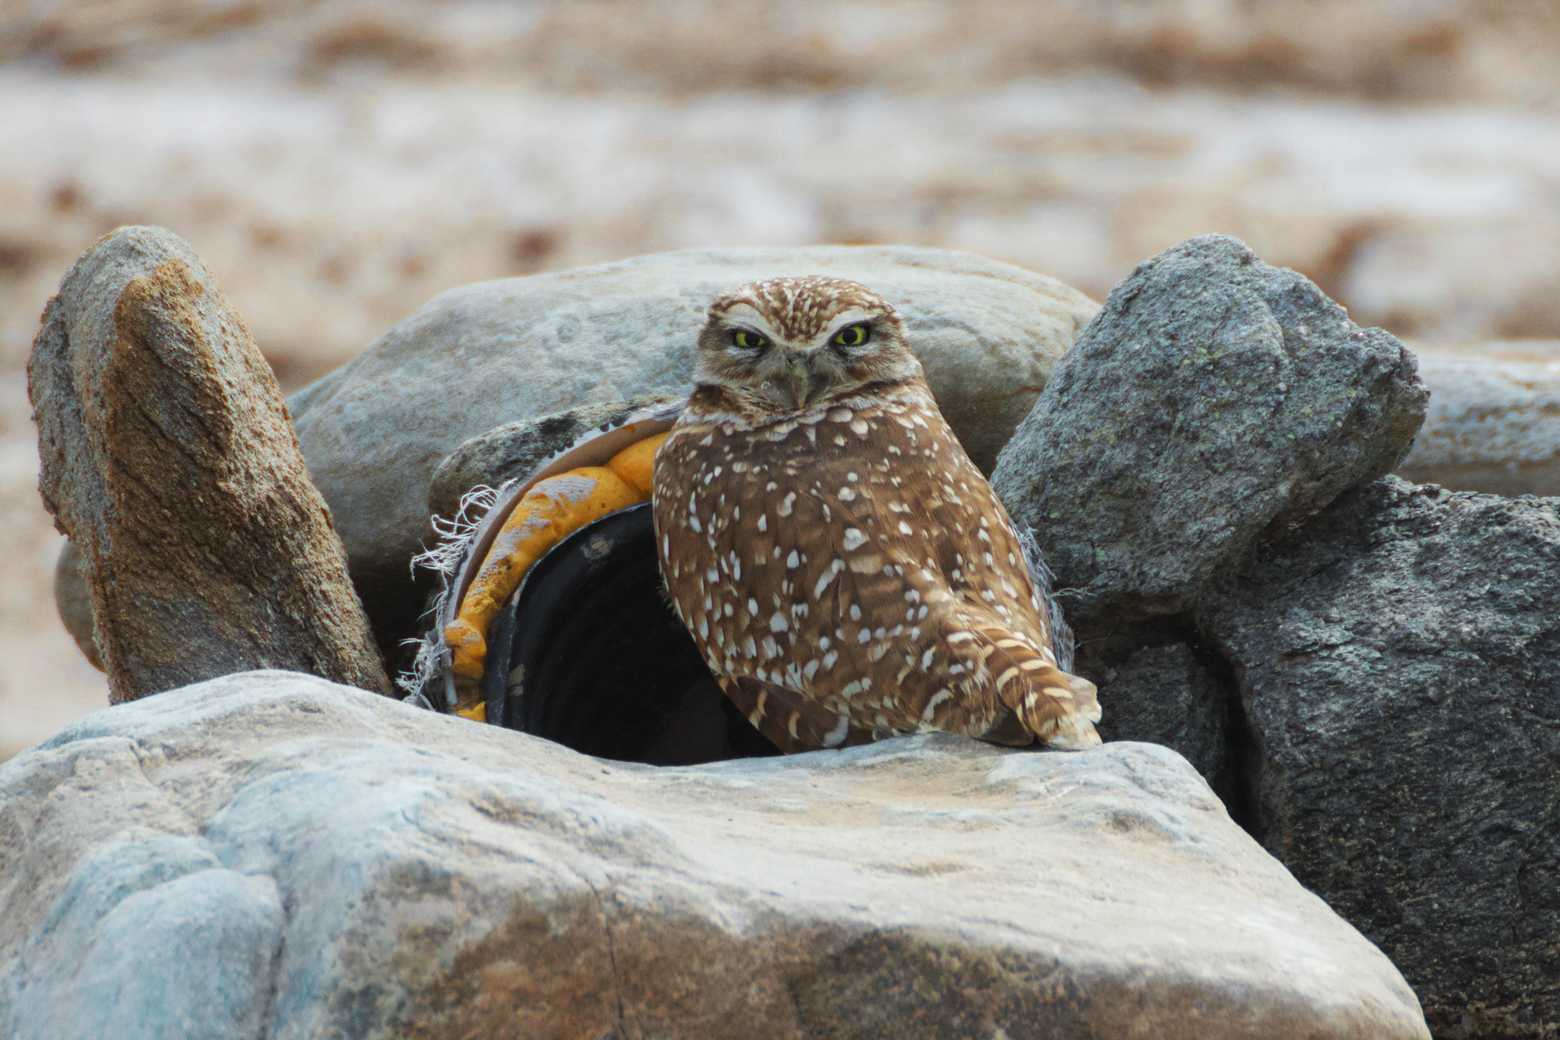 Burrowing owl perched outside of his burrow (a pipe sticking out of rock pile) looking at us